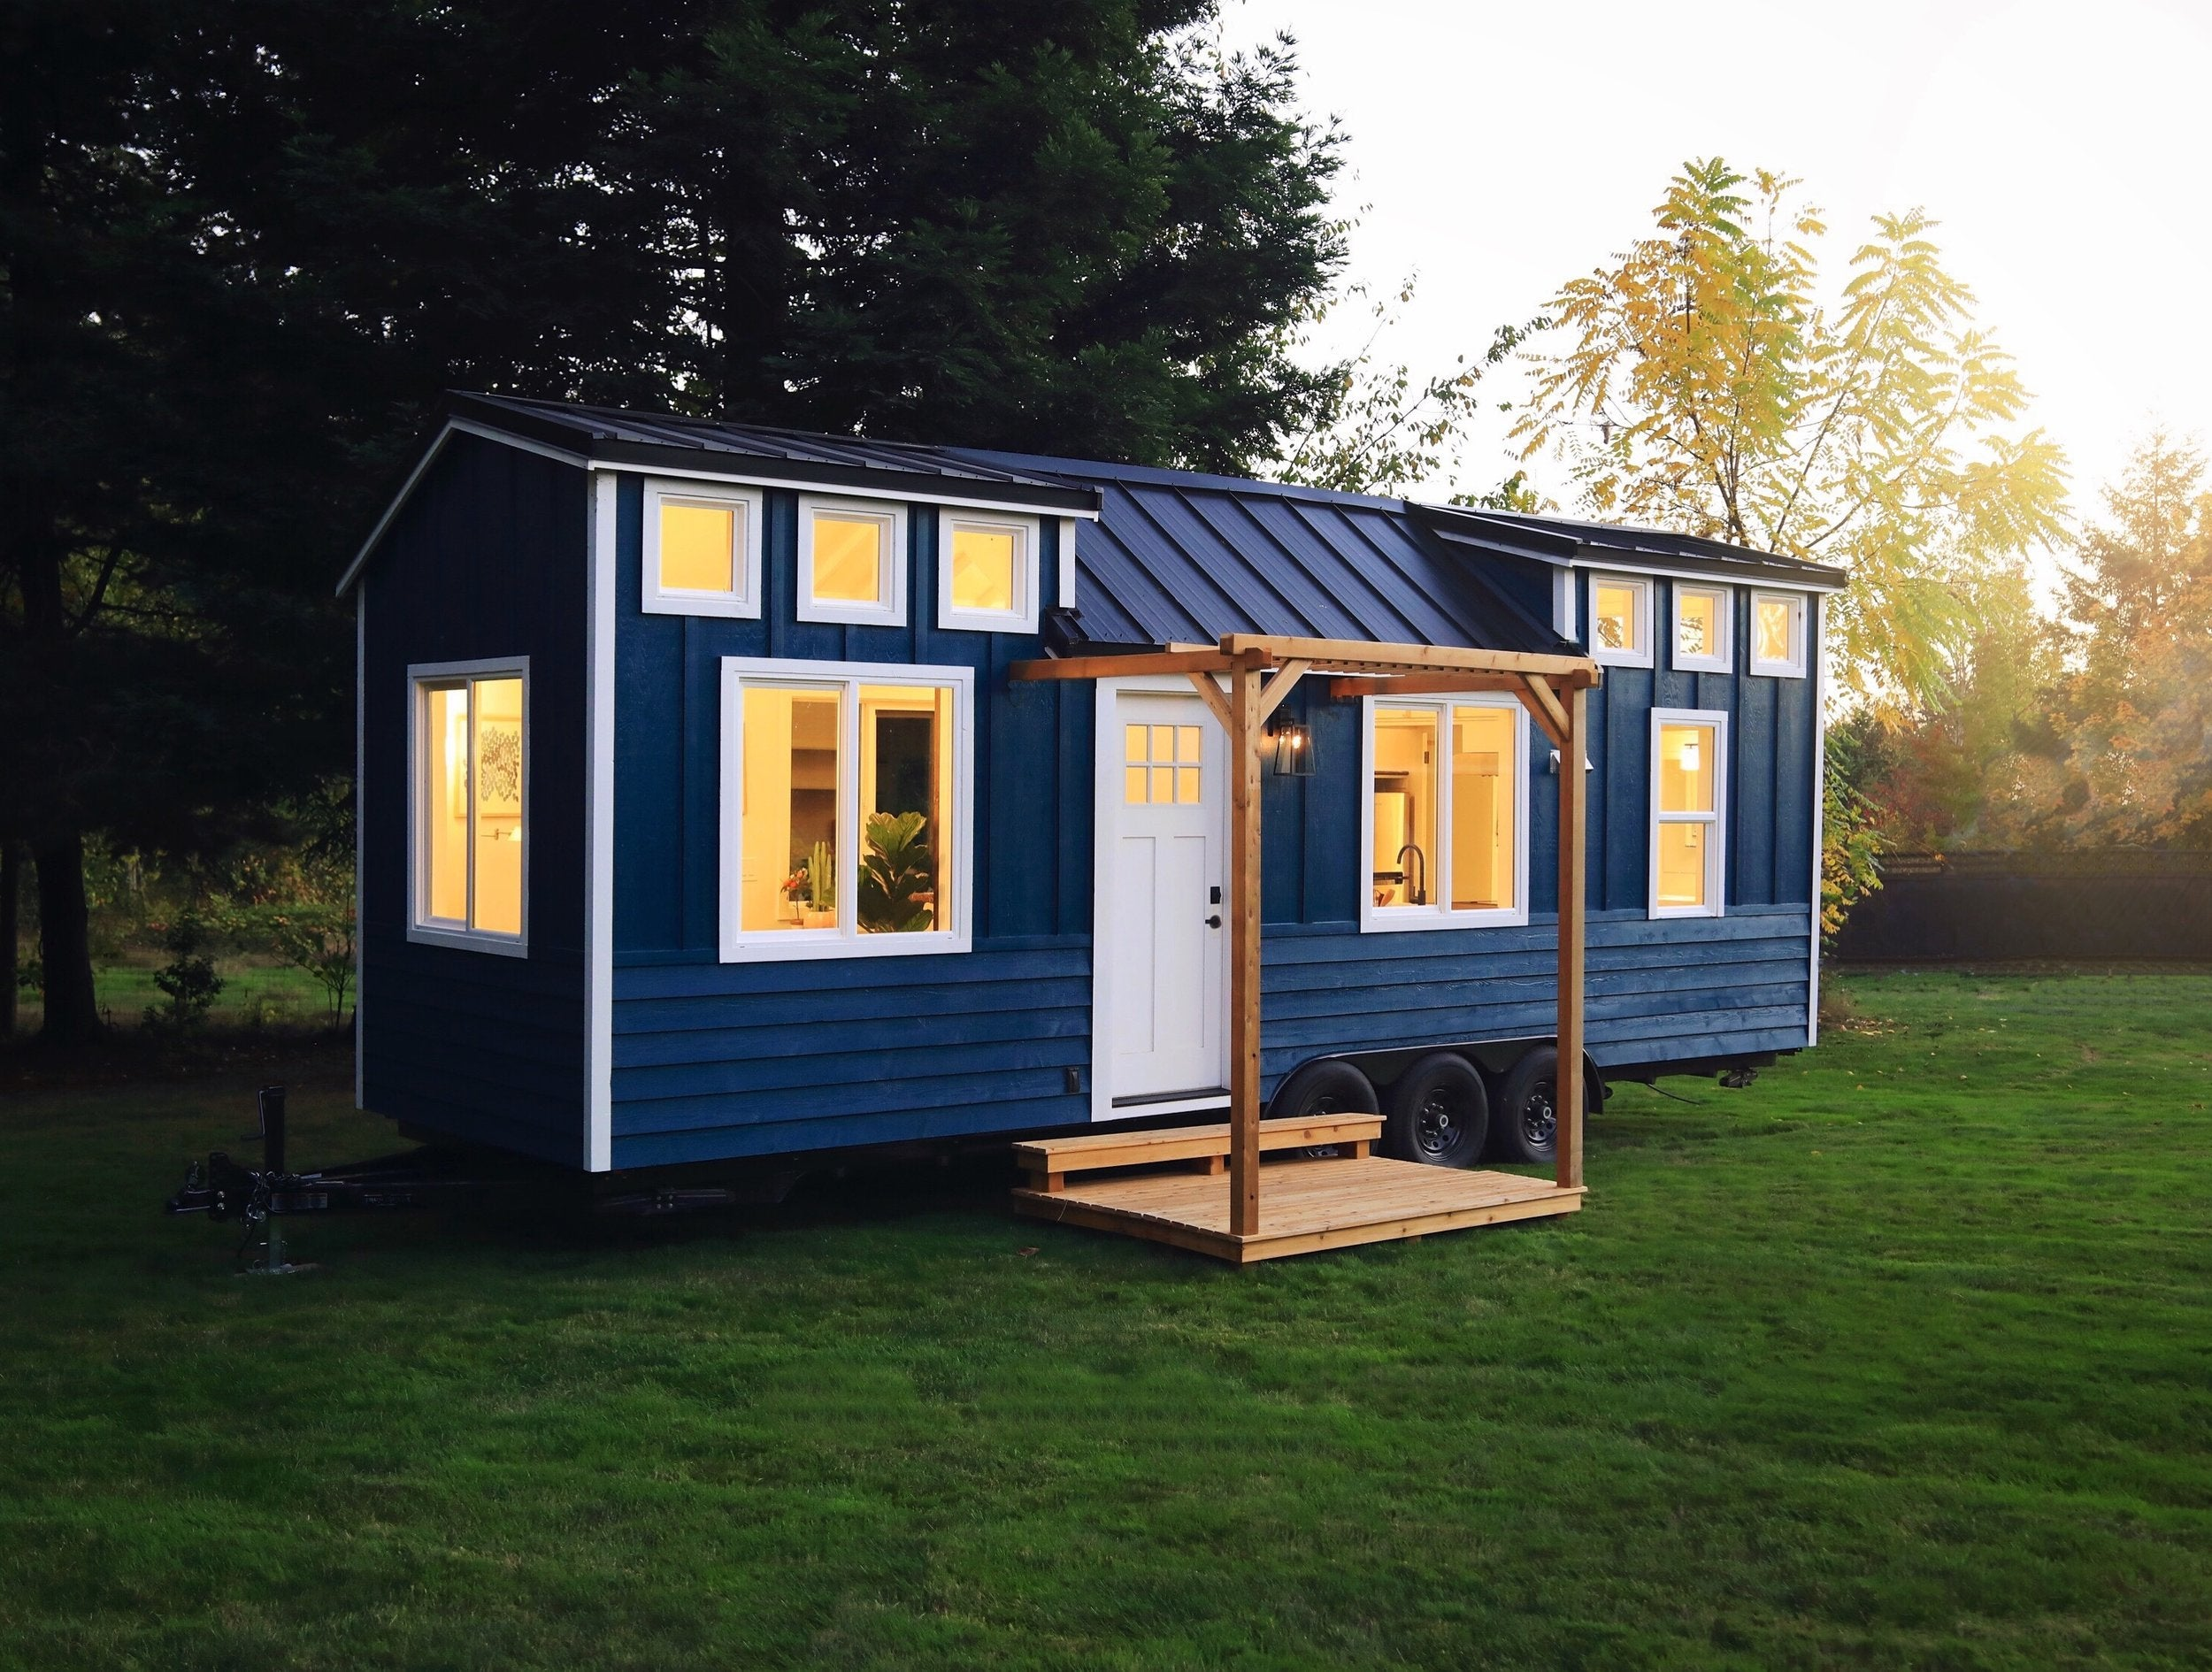 This Impressive Tiny House Interior Design Will Teach You How to Make Small Spaces Feel Larger